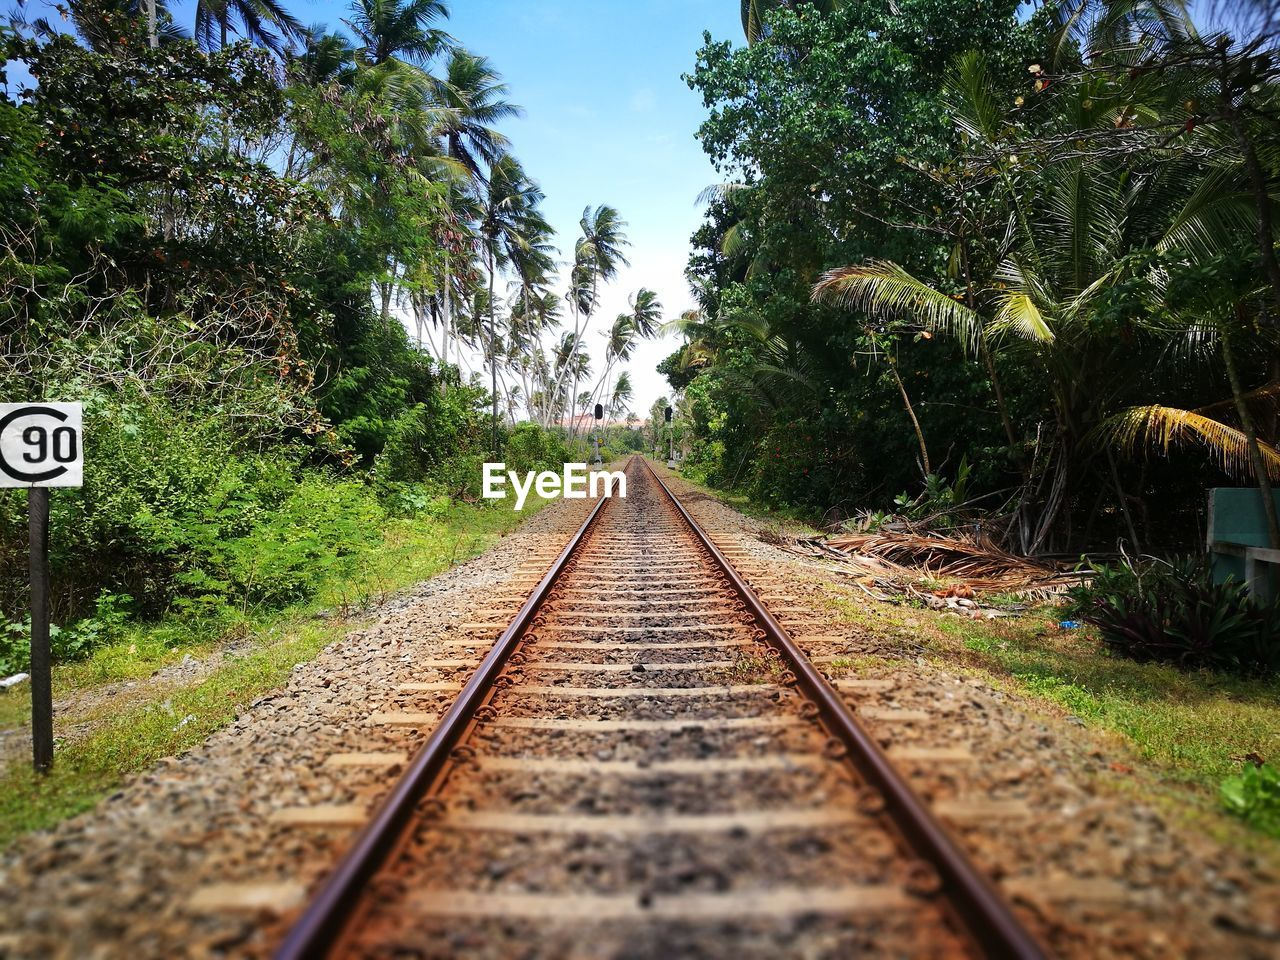 the way forward, direction, plant, transportation, tree, rail transportation, diminishing perspective, railroad track, track, sign, vanishing point, no people, nature, day, sky, growth, green color, communication, mode of transportation, outdoors, surface level, long, parallel